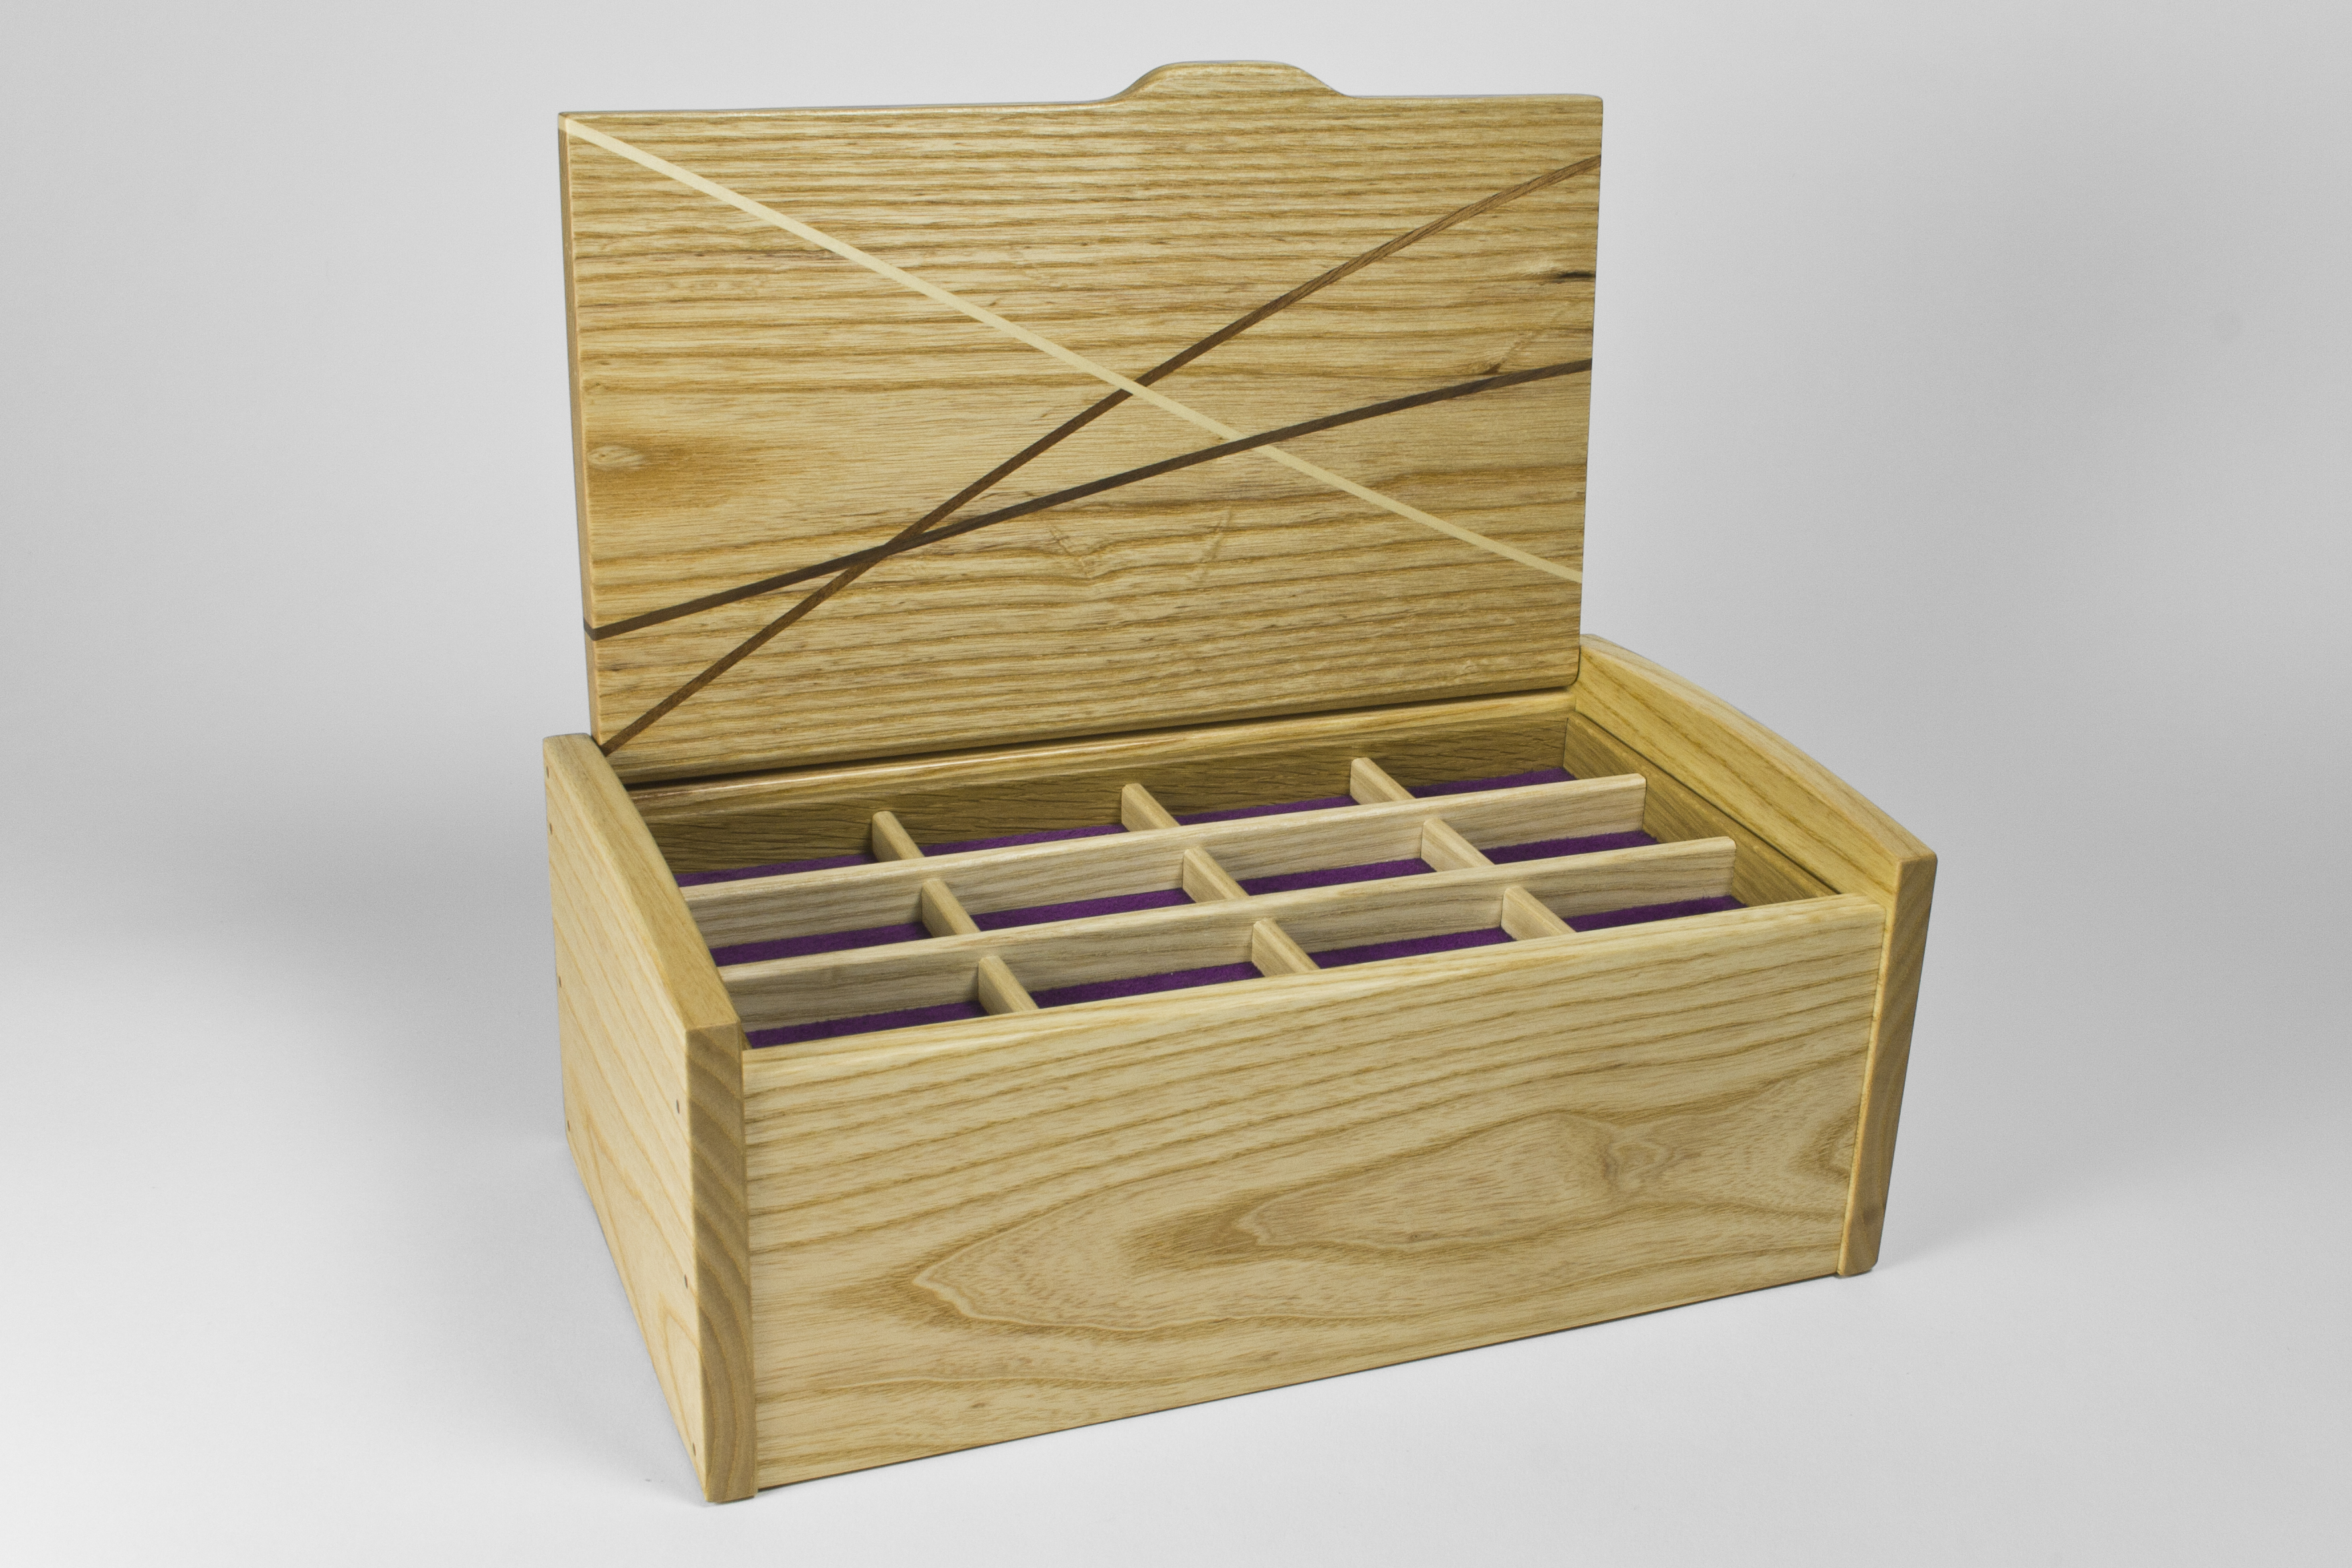 Ash jewellery box with lid open